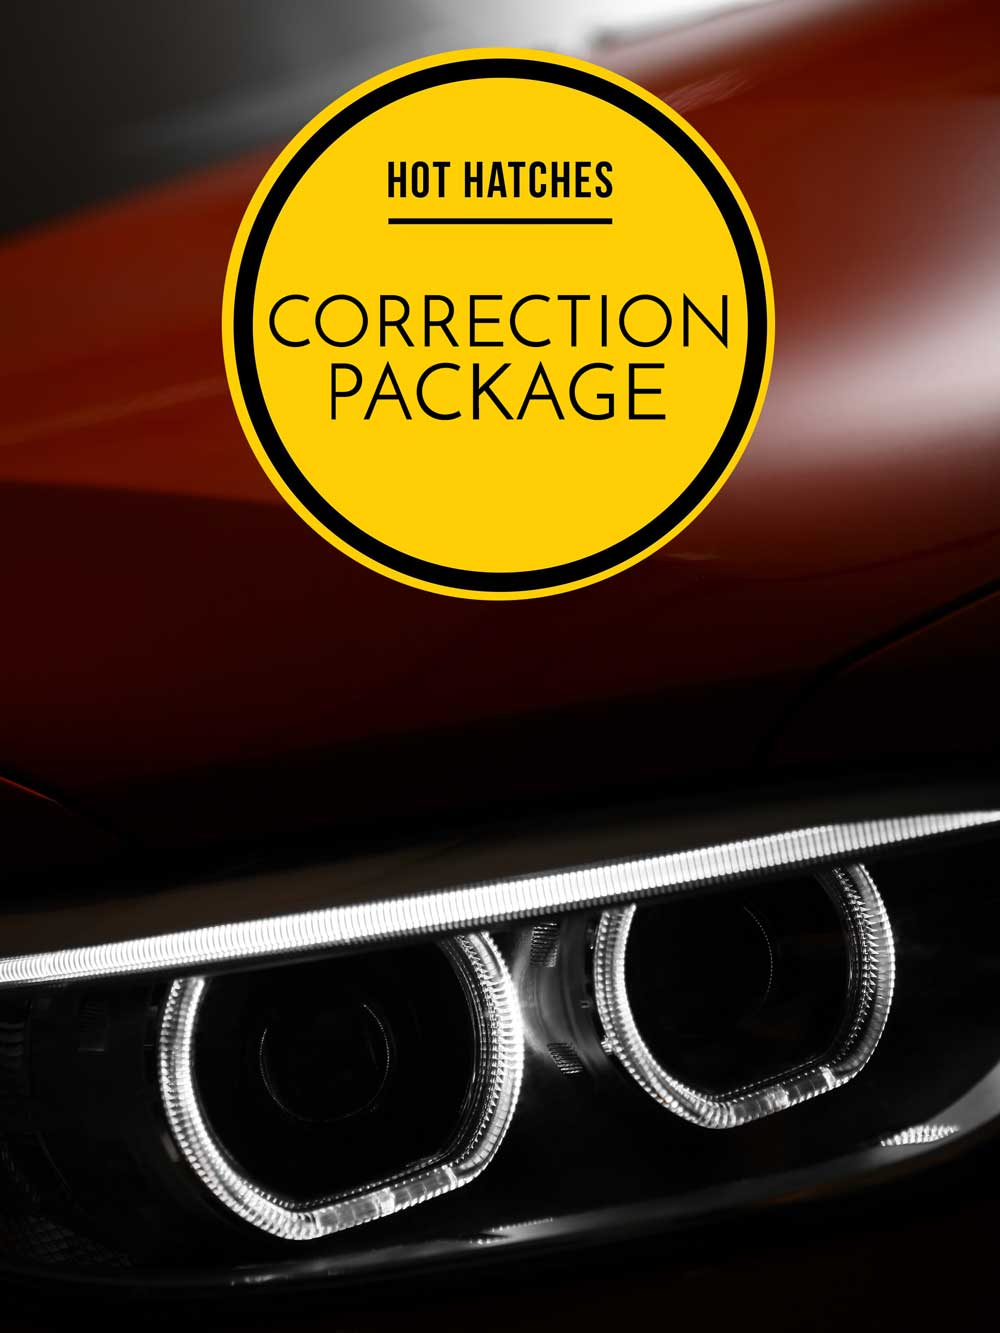 Hot Hatches Correction Package